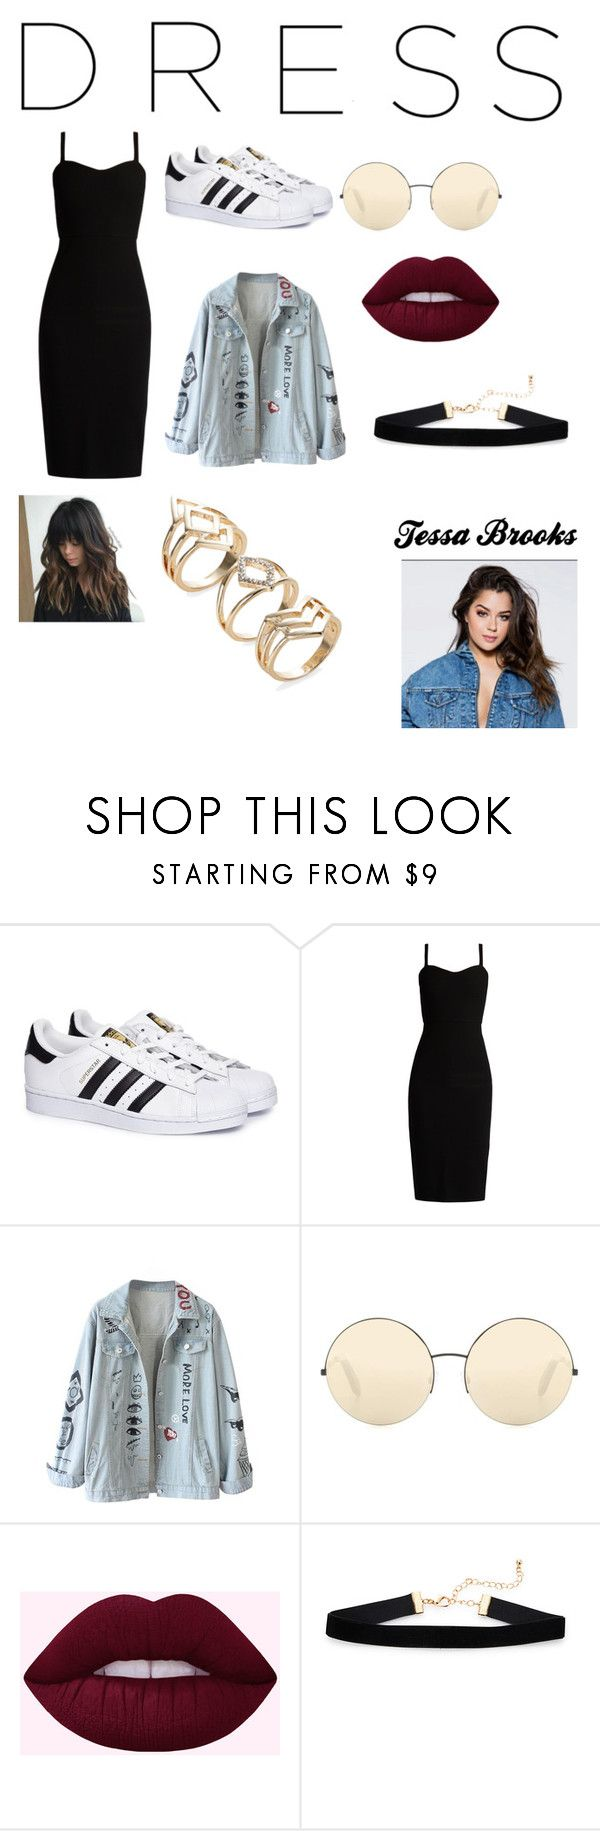 """""""Inspired by Tessa Brooks"""" by fshioncrazy ❤ liked on Polyvore featuring adidas, MaxMara and Victoria Beckham"""